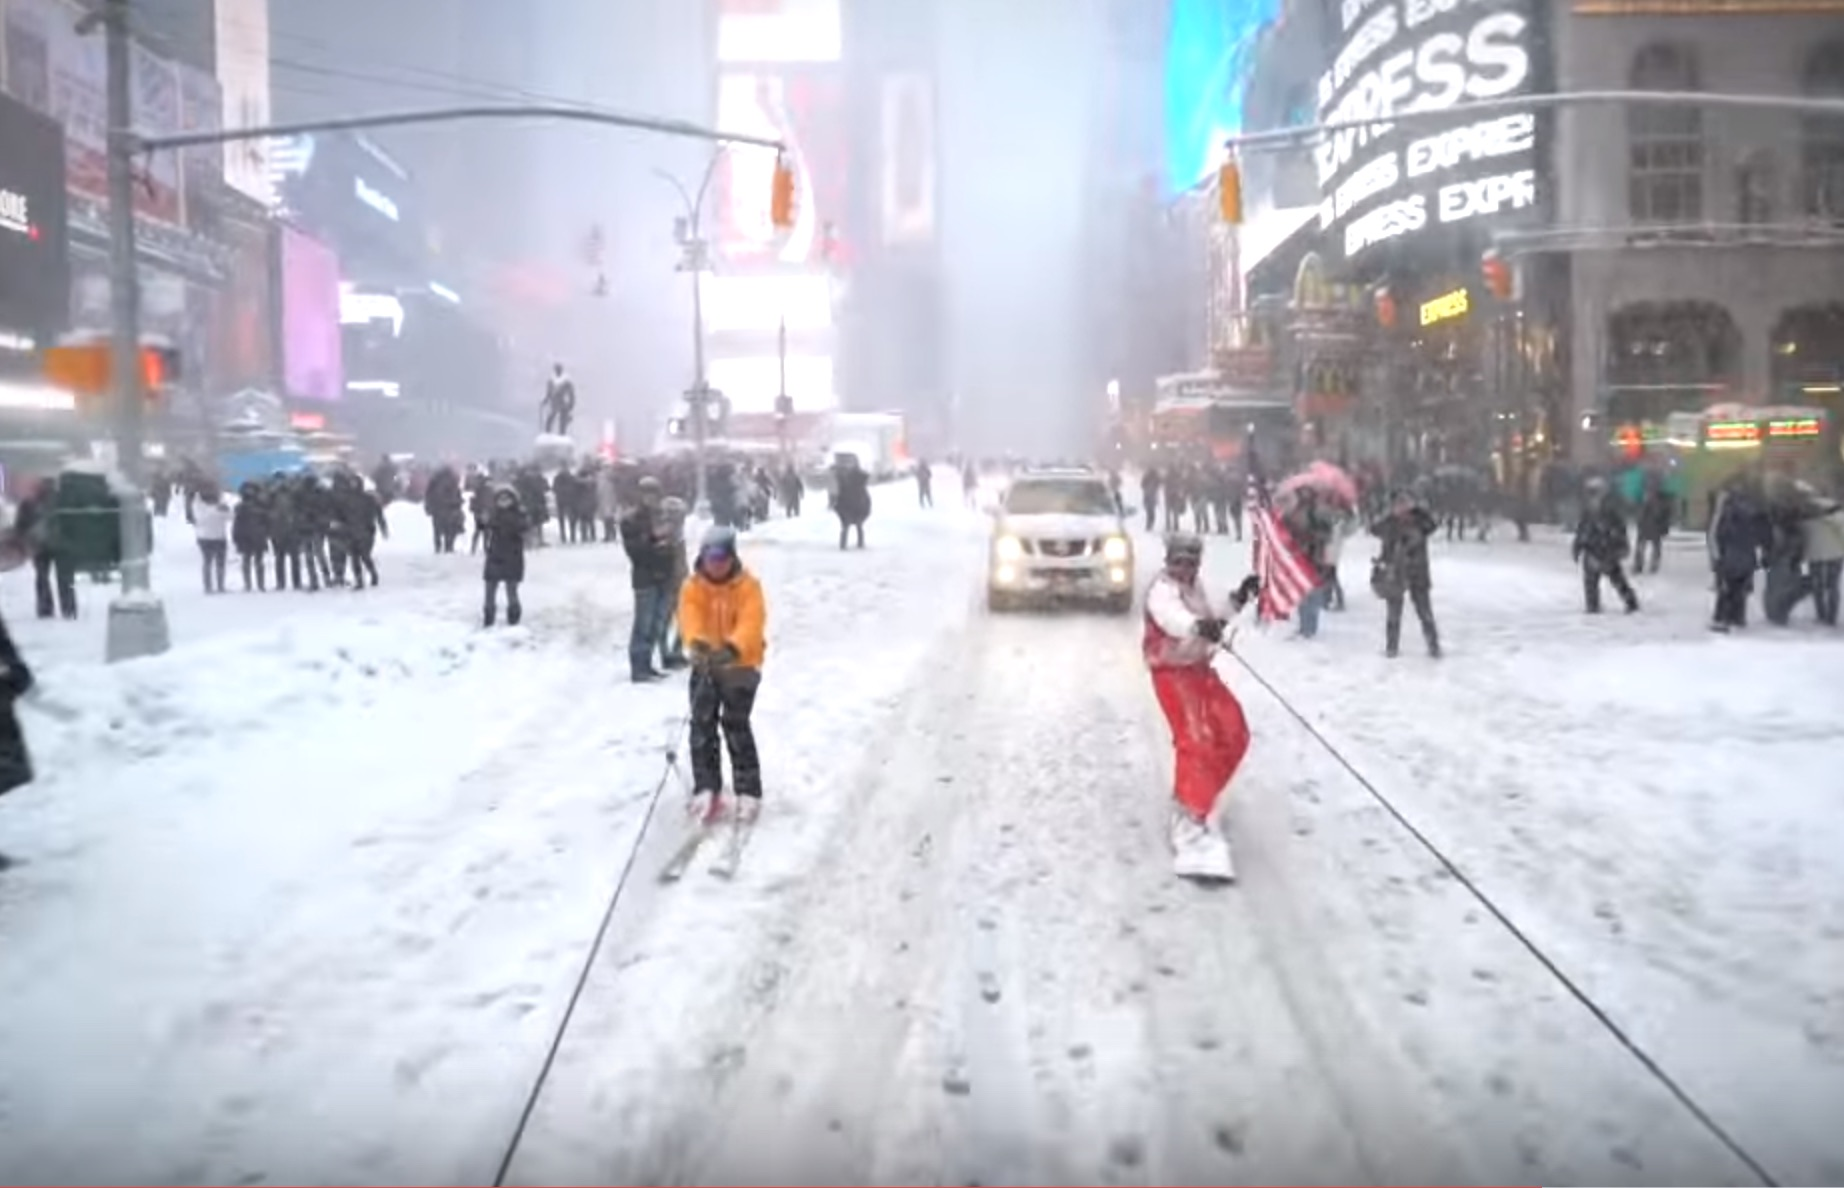 Just a YouTuber snowboarding through New York City, like you do